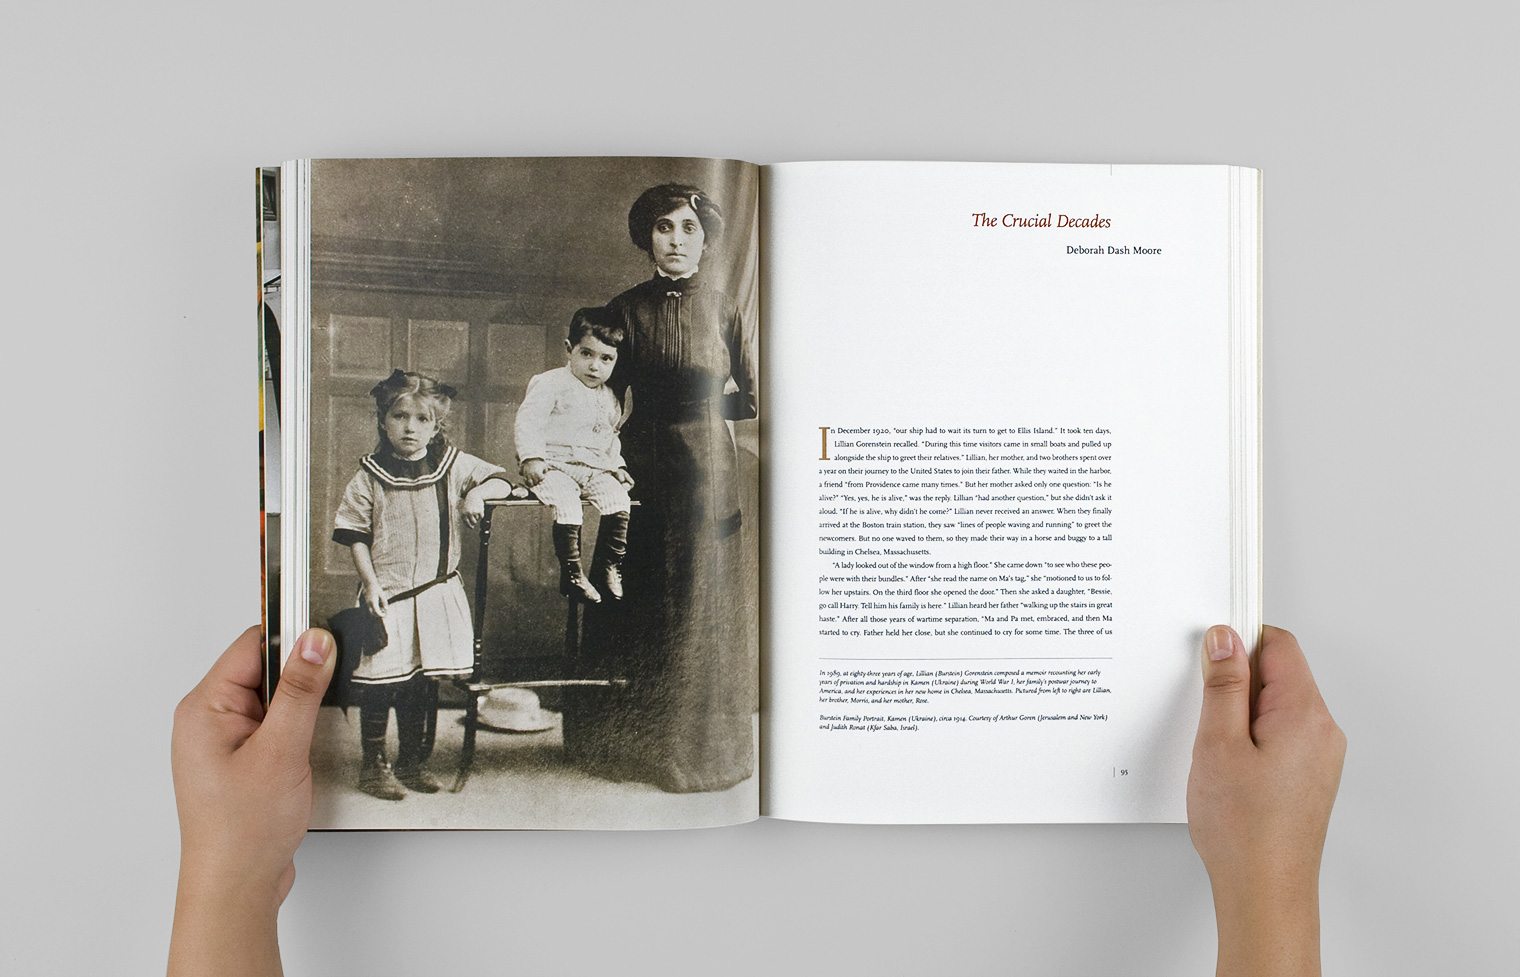 A chapter opener shows a 1920s portrait of a Jewish Ukrainian immigrant family.